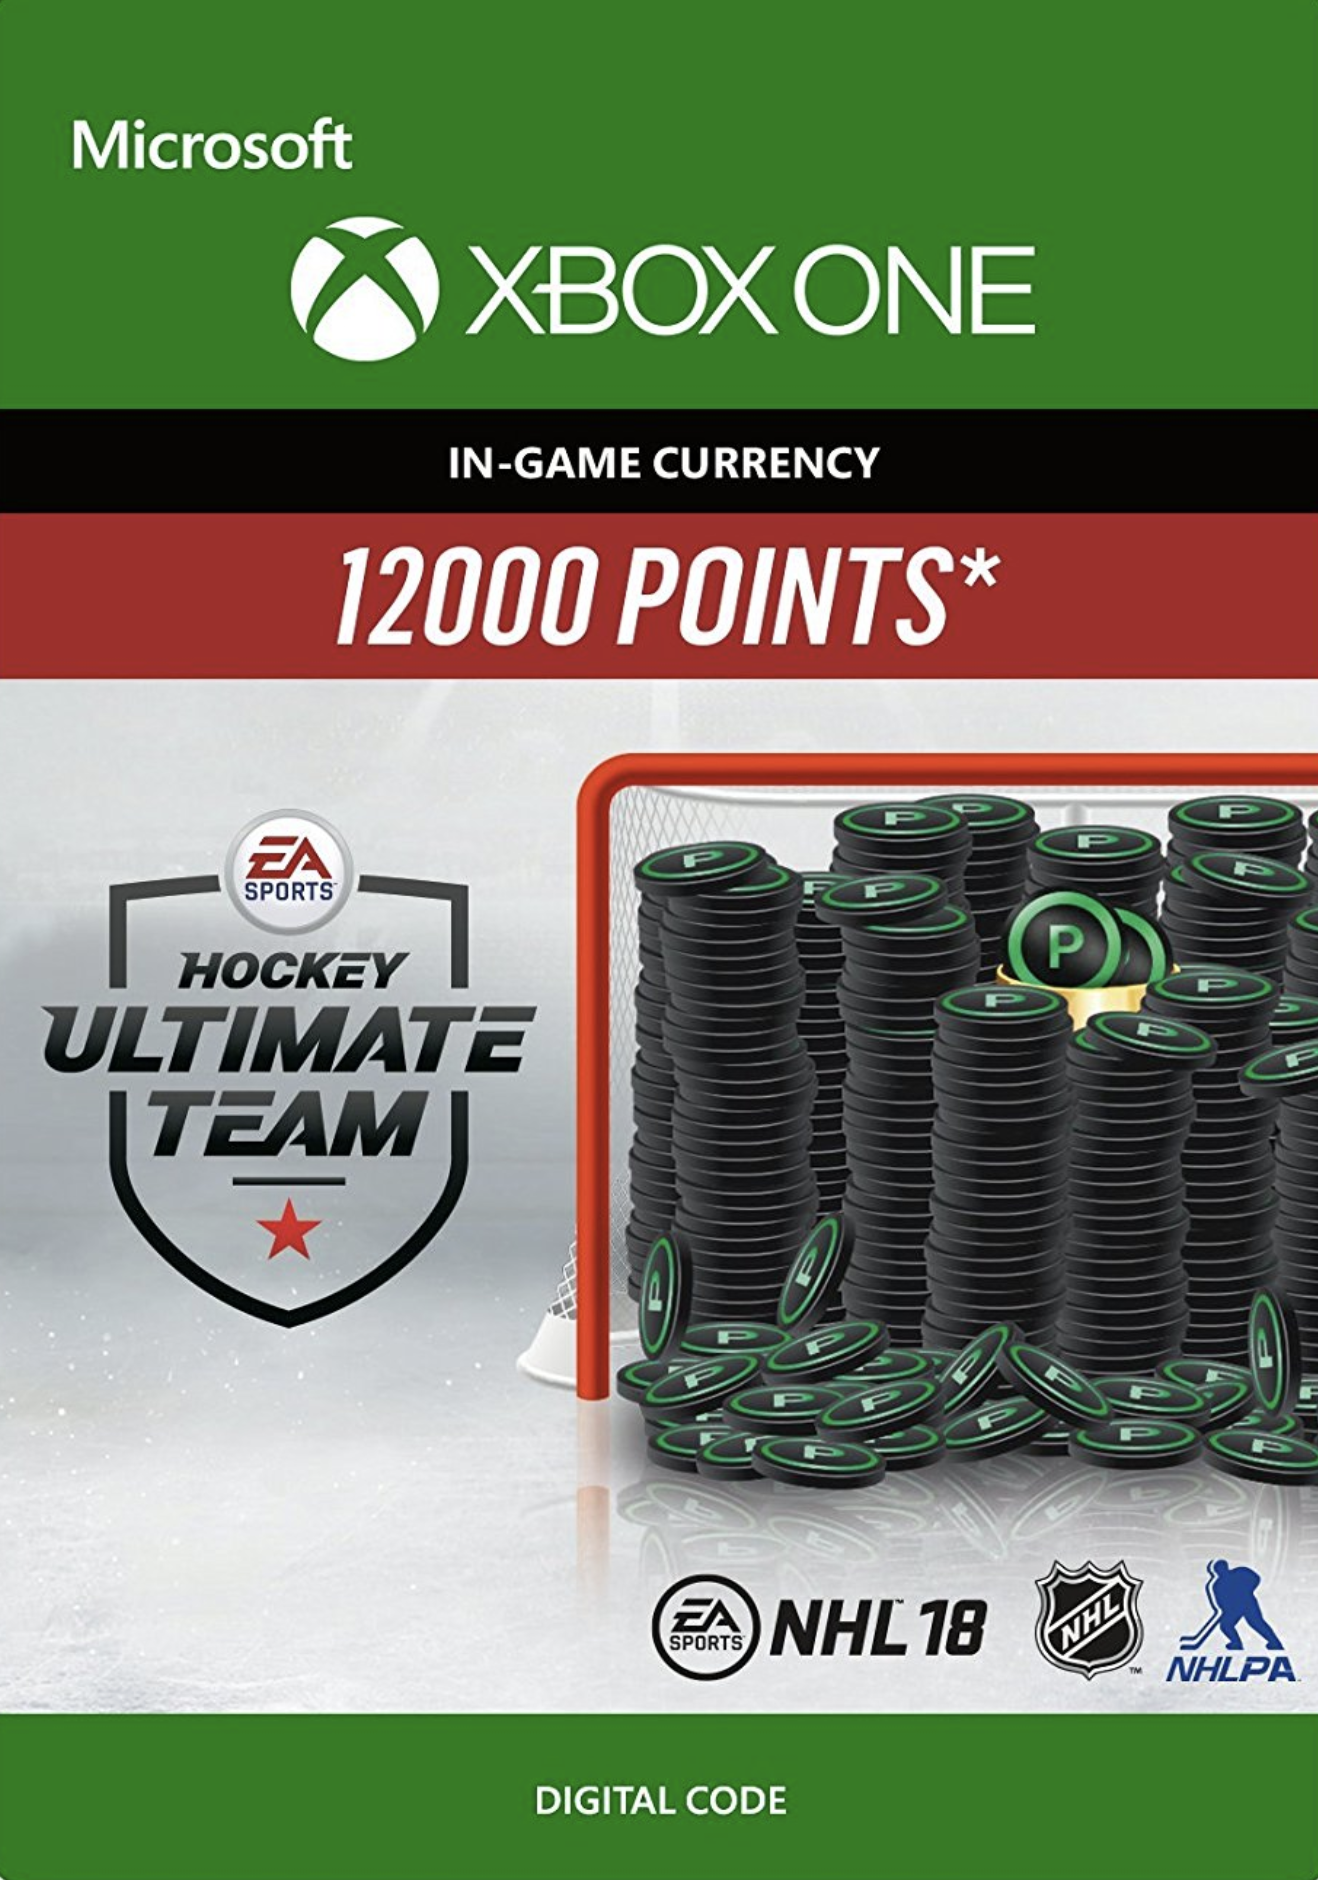 nhl-18-ultimate-team-nhl-points-12000-xbox-one